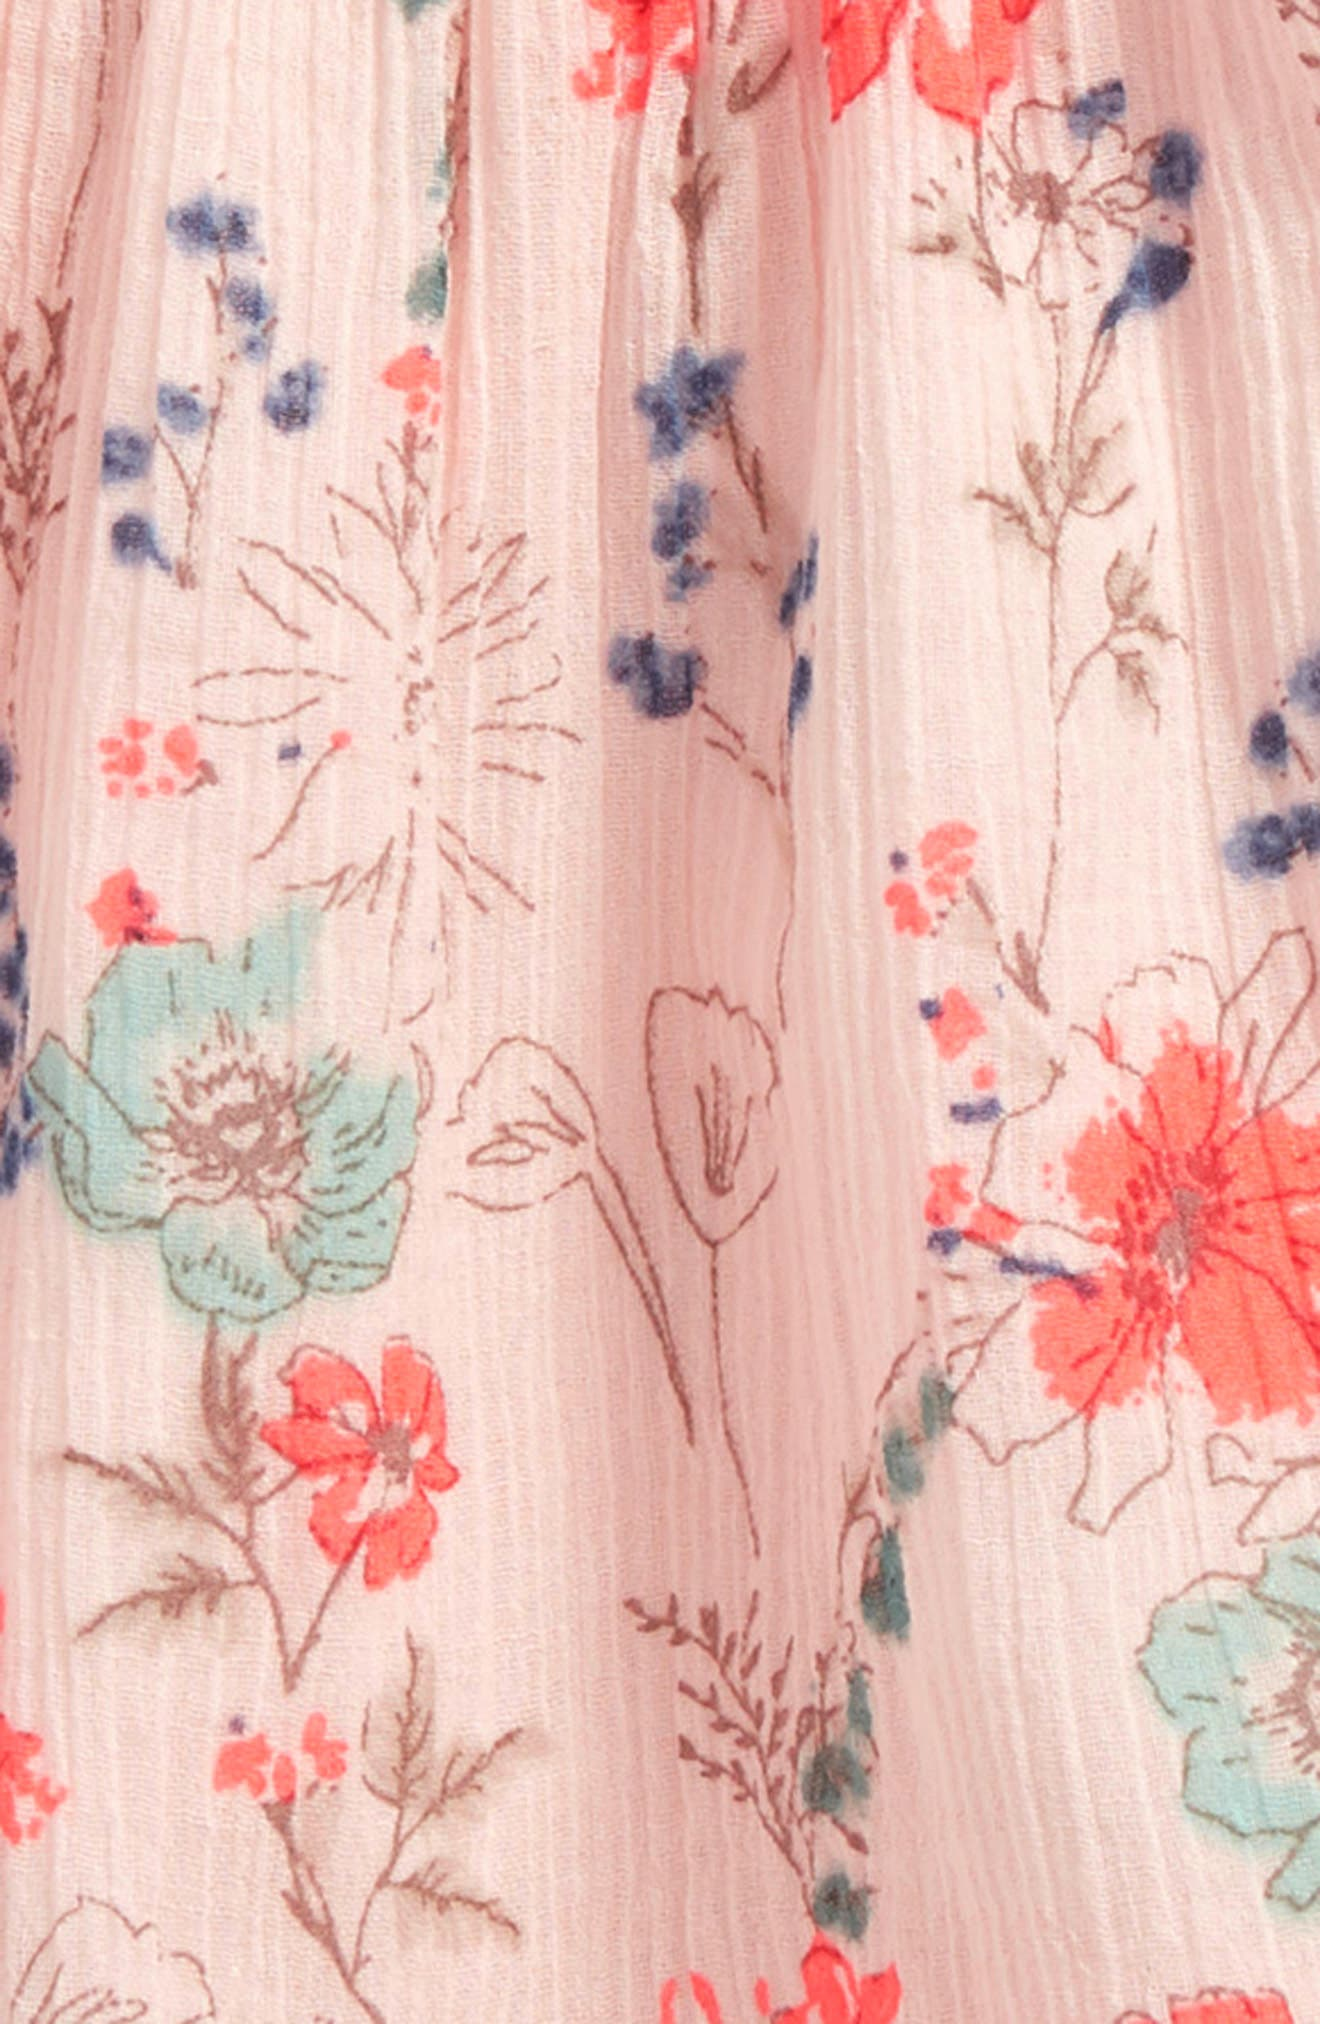 Floral Swing Dress,                             Alternate thumbnail 2, color,                             Pink Peach Spaced Garden